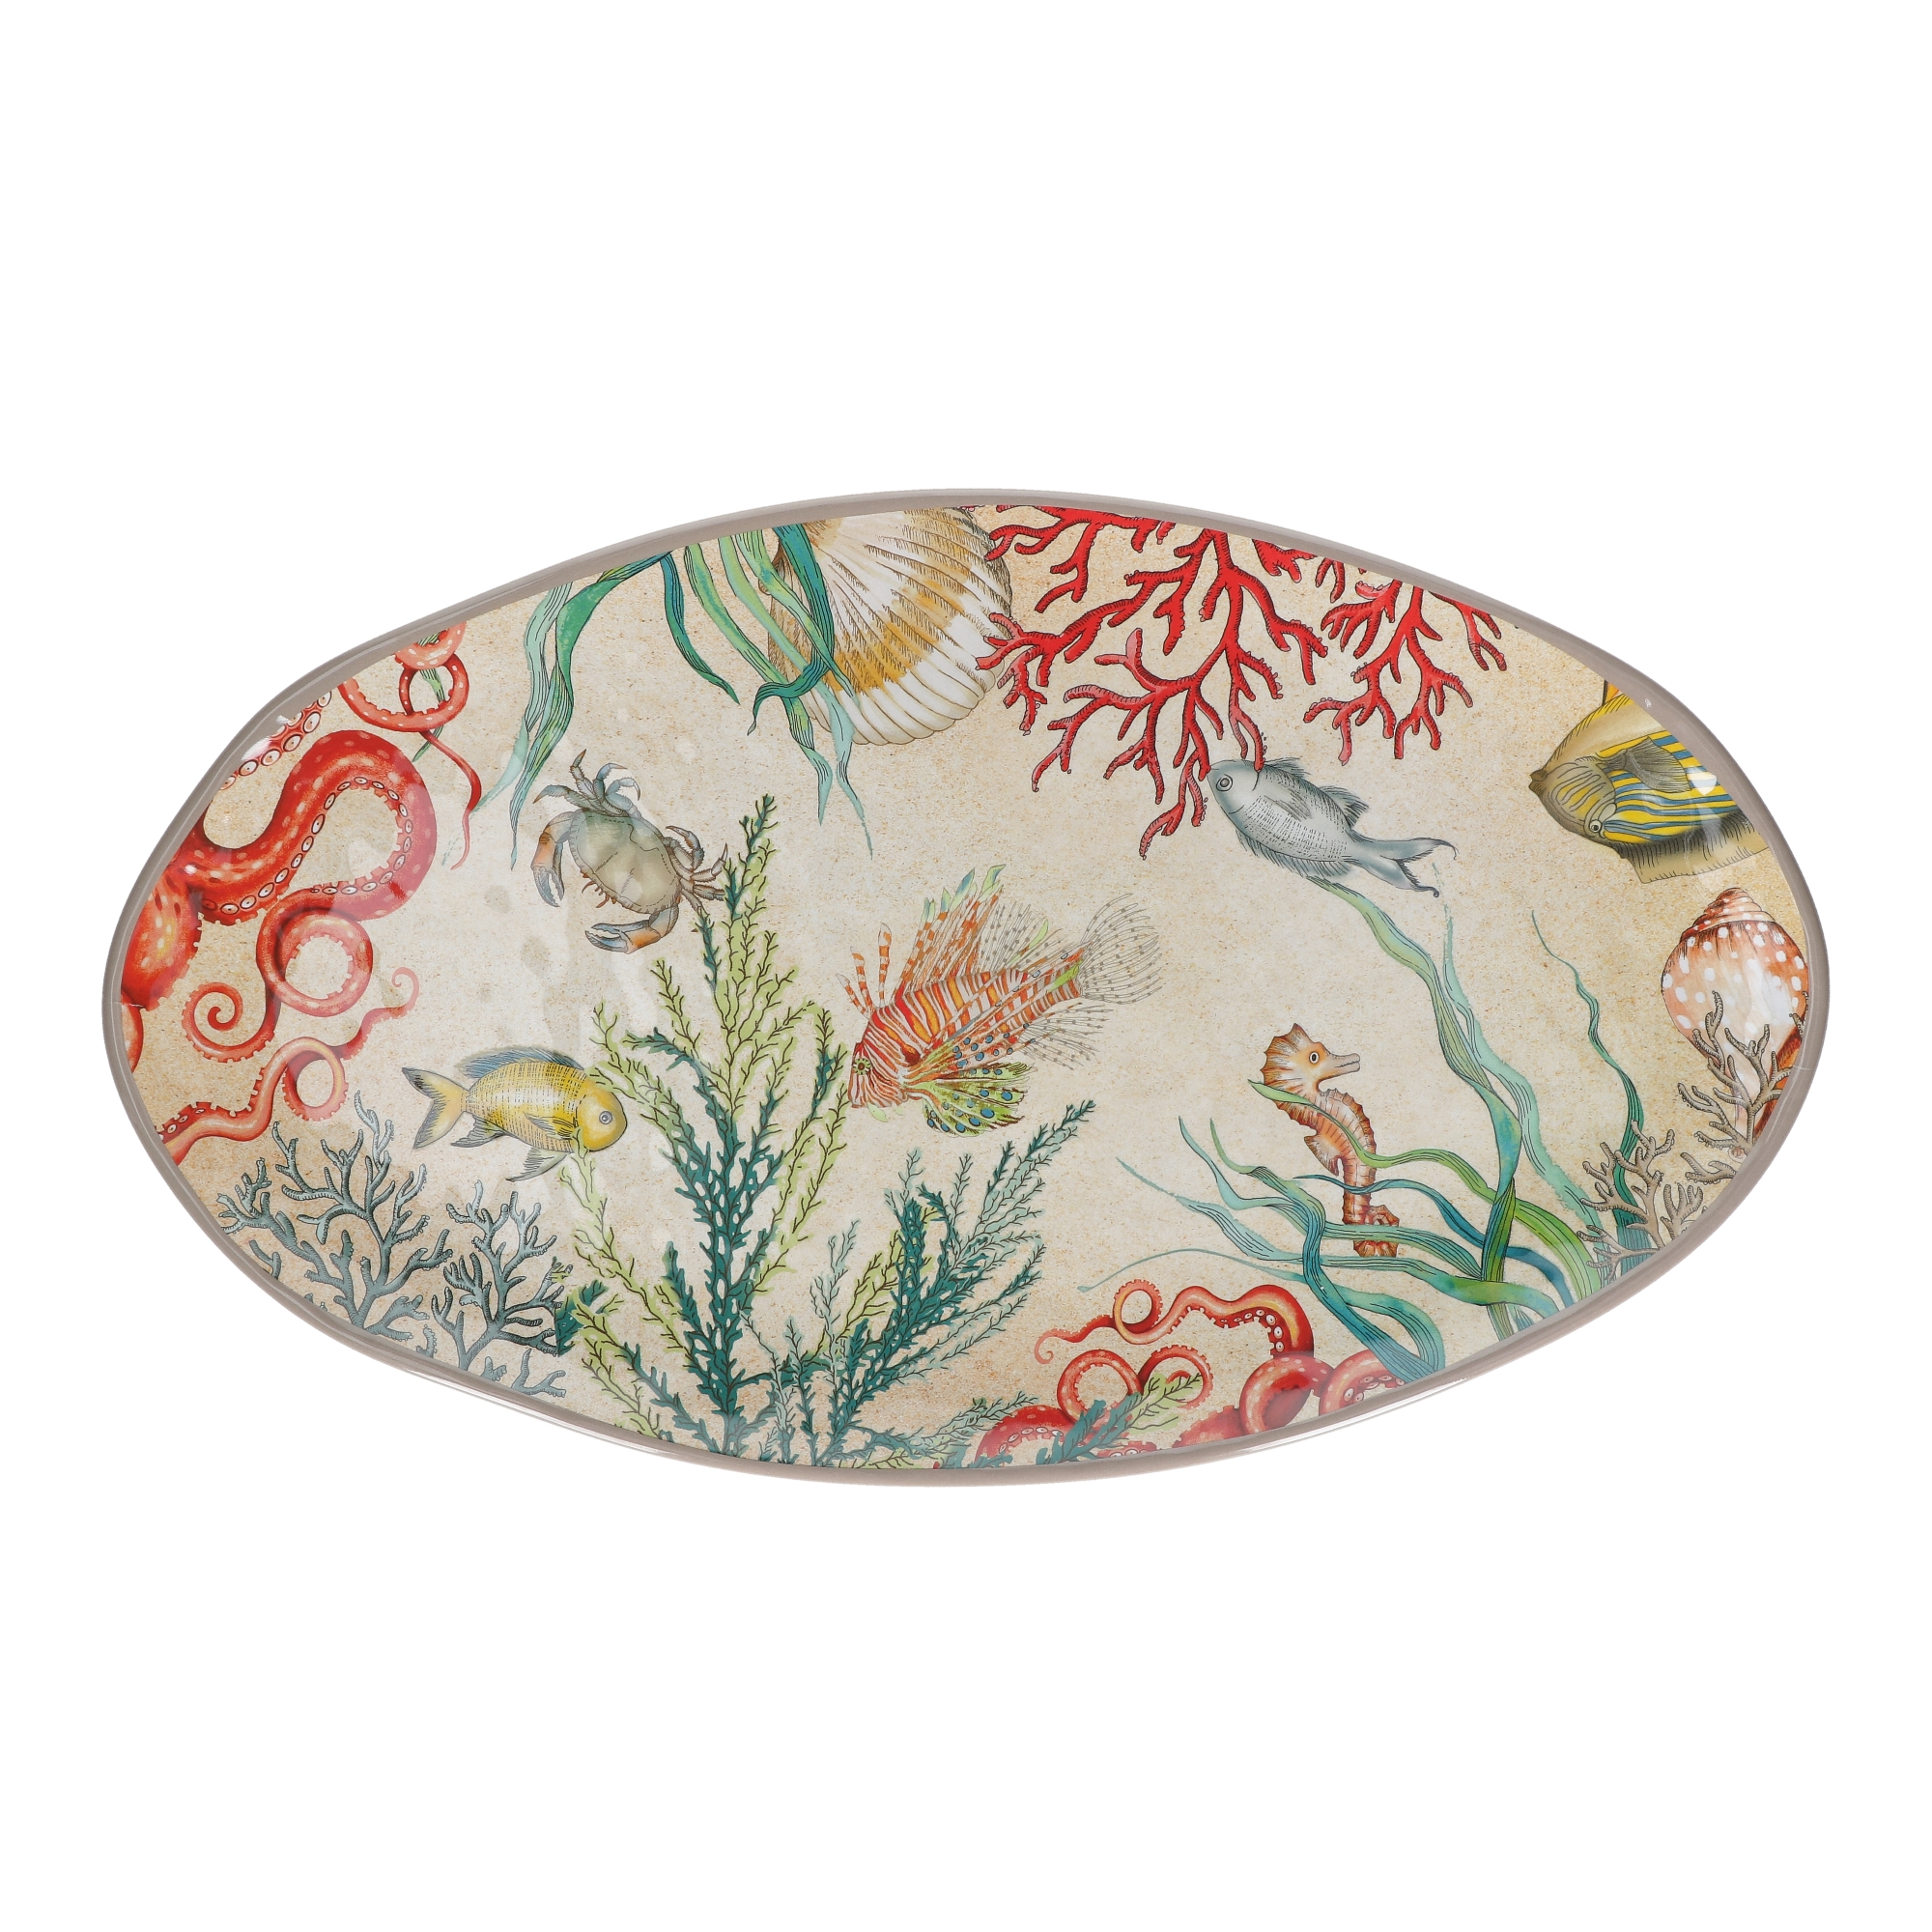 SEA LIFE Oval Platter 100% Melamine 52x30 cm in Gift Box